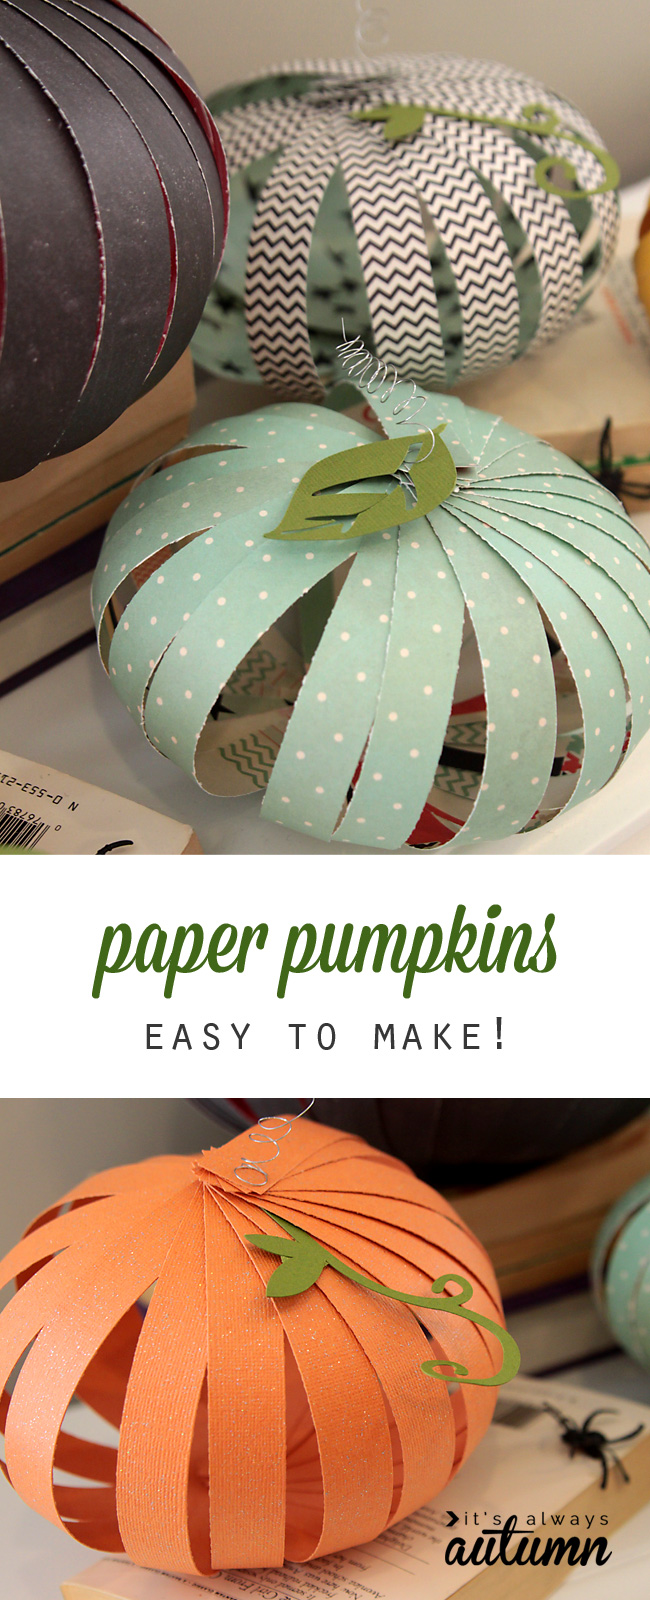 How to make paper pumpkins {fun + easy Halloween kids' craft #citrouilleenpapier